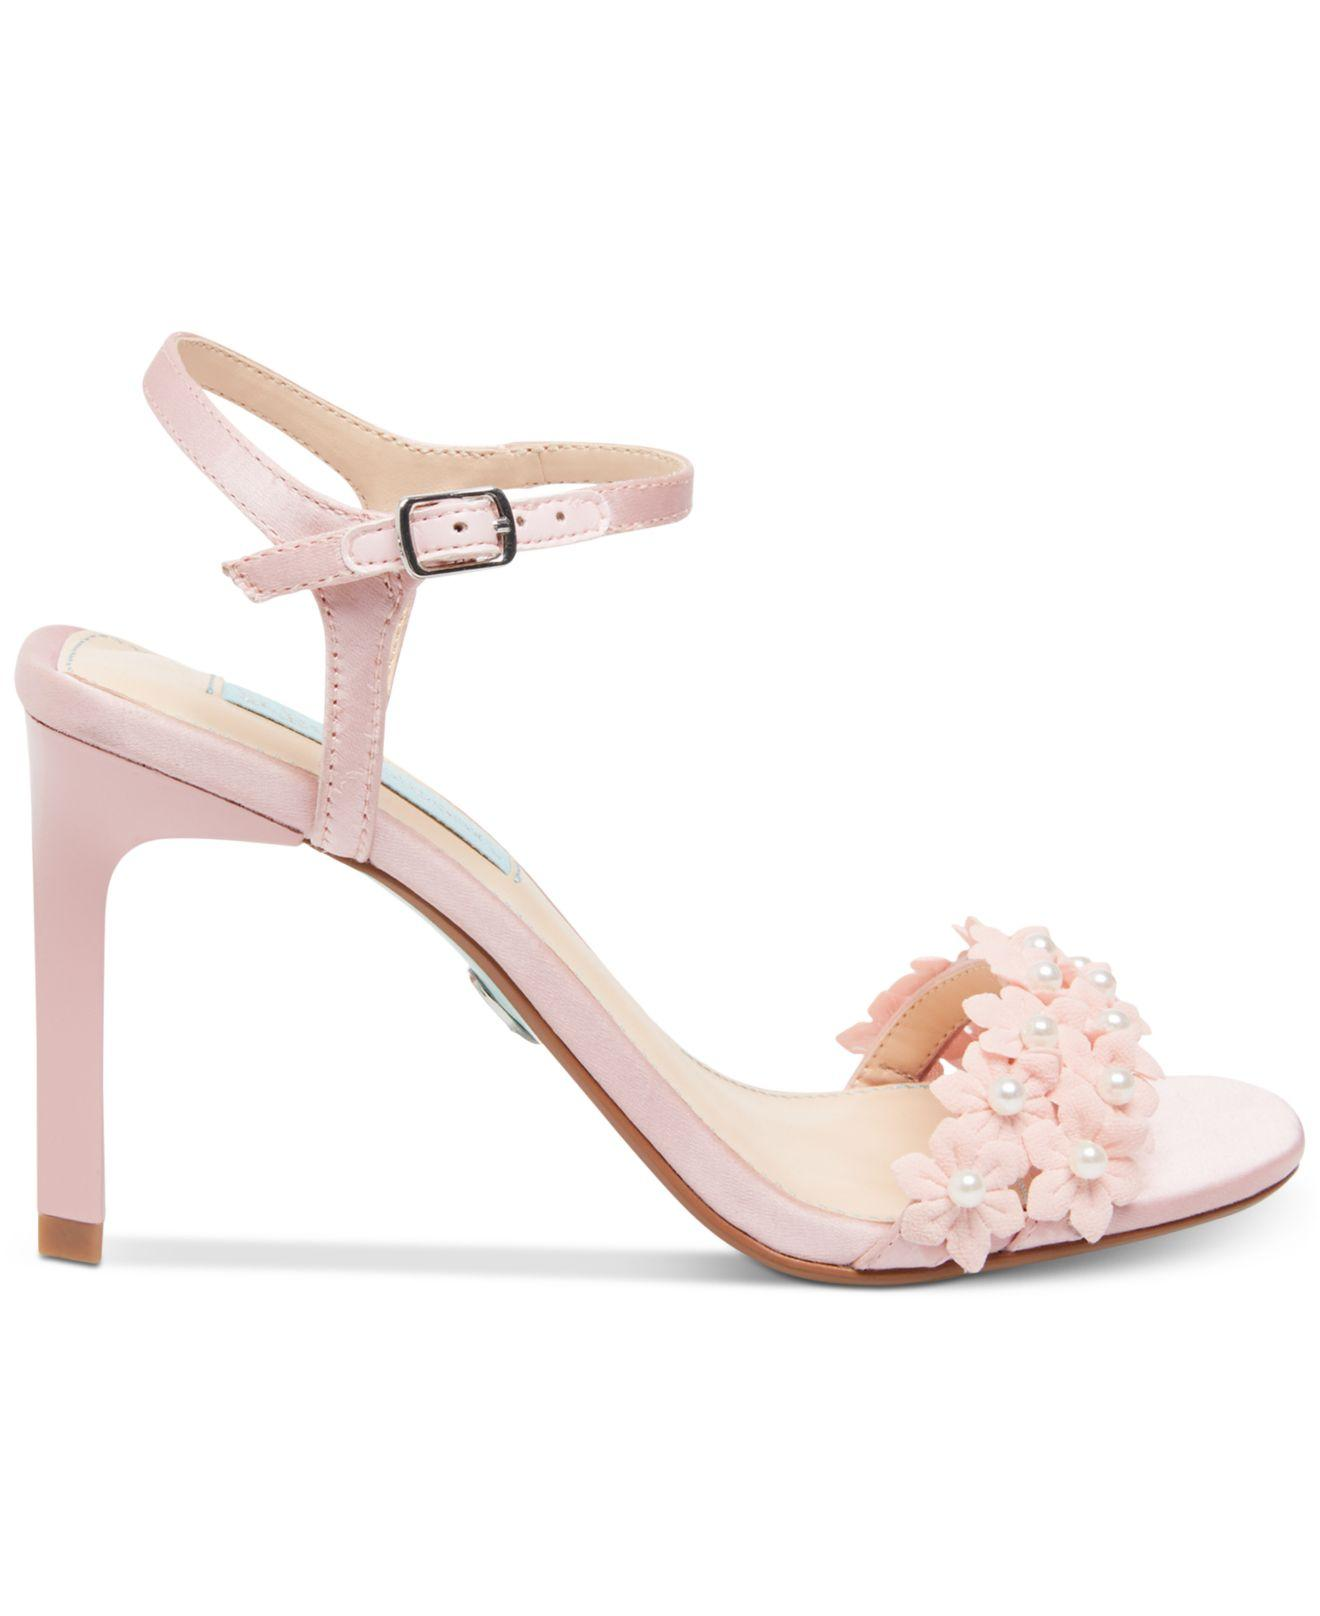 3d7bc5ed439 Lyst - Betsey Johnson Blue By Snow Evening Sandals in Pink